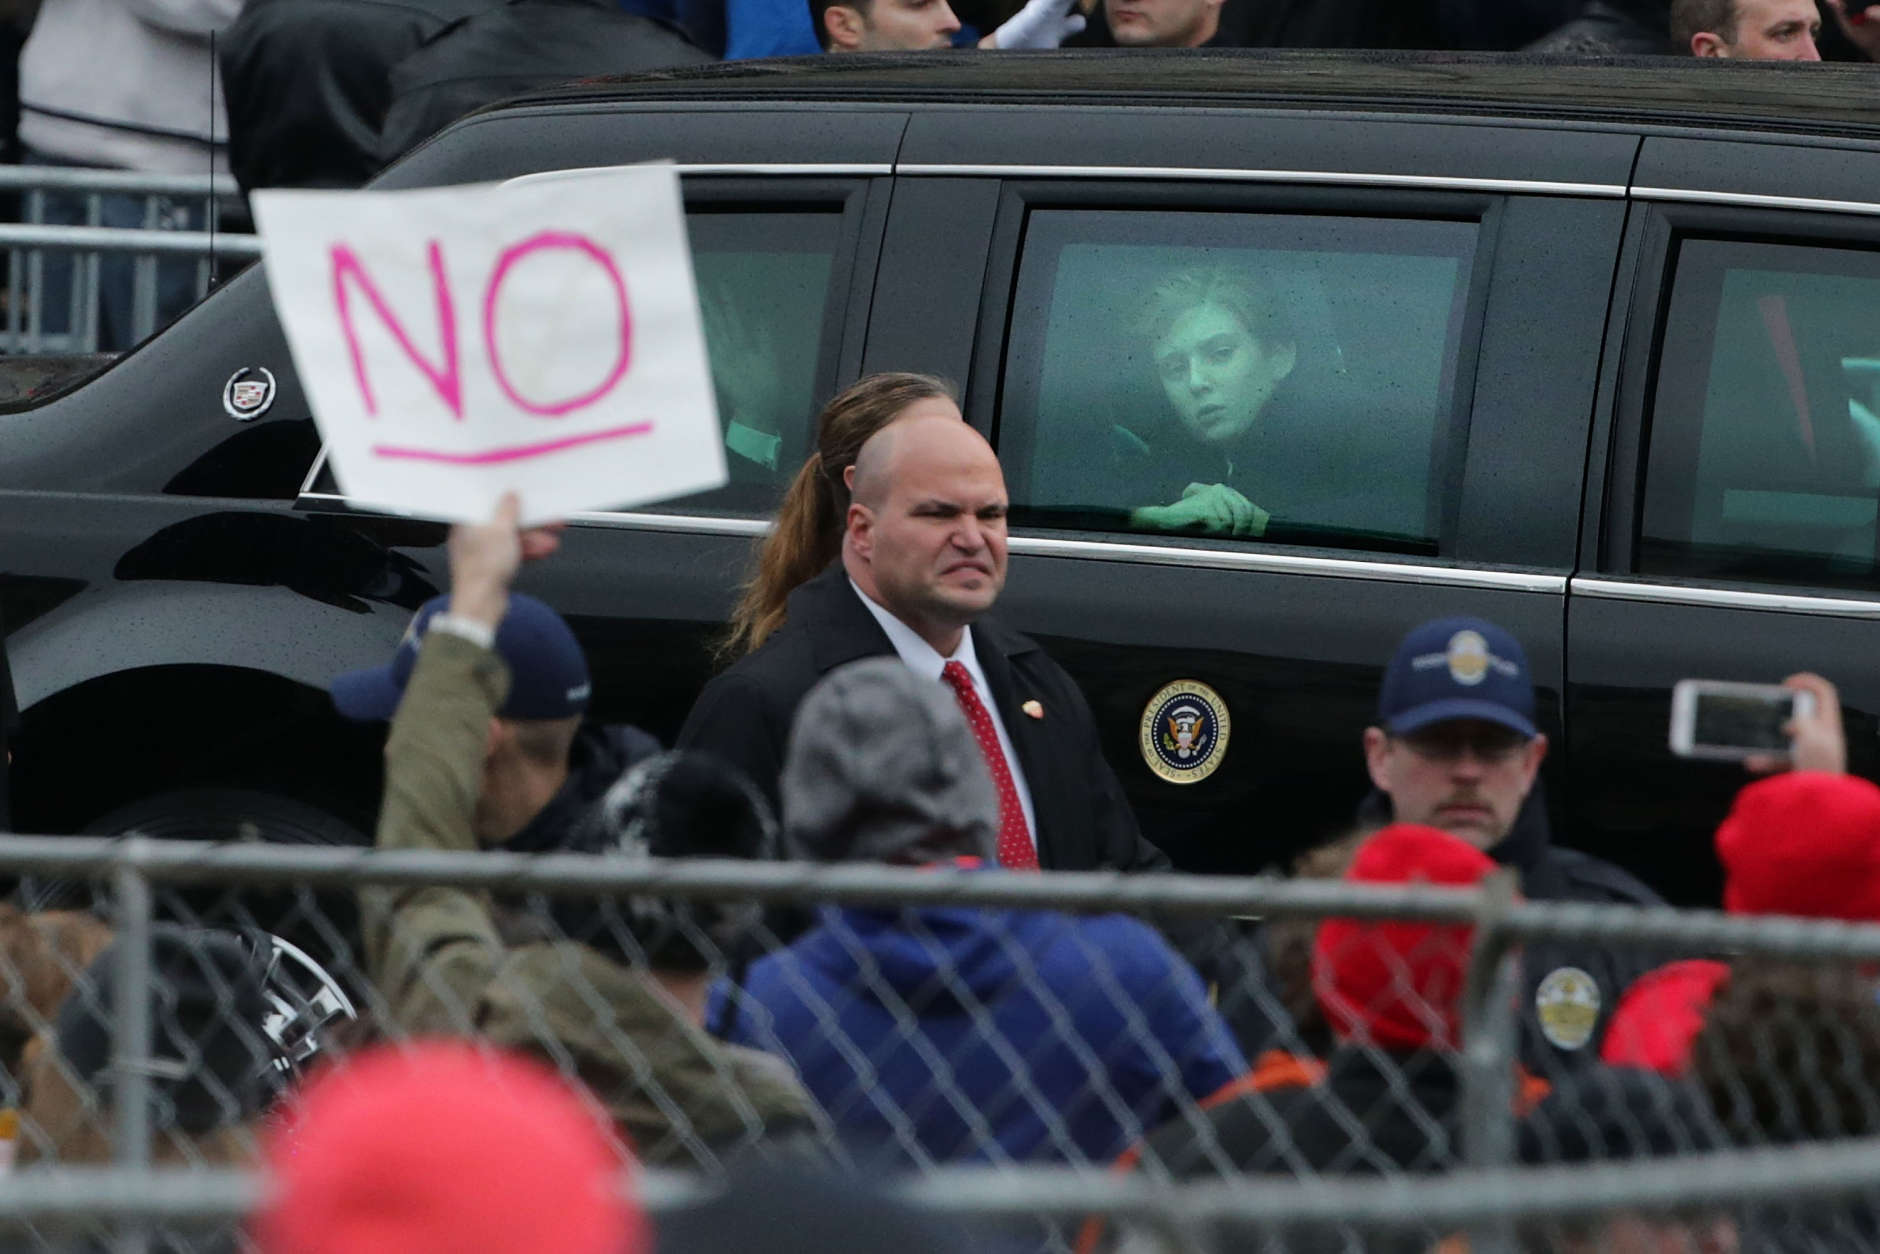 Ten-year-old Barron Trump looks out the window of the presidential limosine as he joins his parents U.S. President Donald J. Trump and first lady Melania Trump as they travel down Pennsylvania Avenue during the Inauguration Day Parade January 20, 2017 in Washington, D.C. (Photo by Chip Somodevilla/Getty Images)